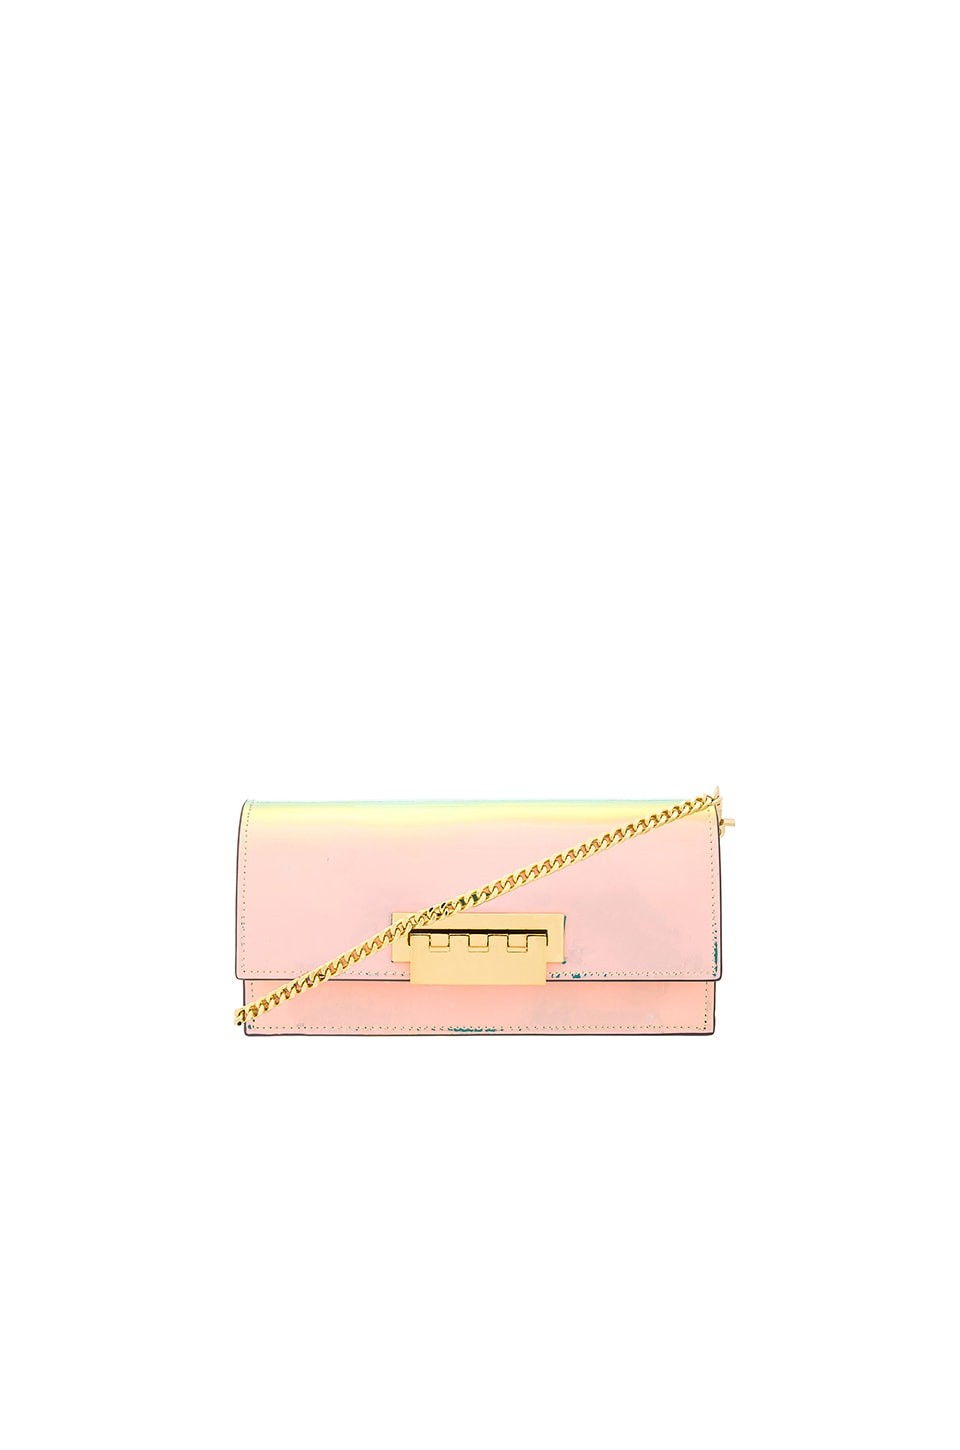 Zac Zac Posen Earthette Flat Crossbody in Iridescent